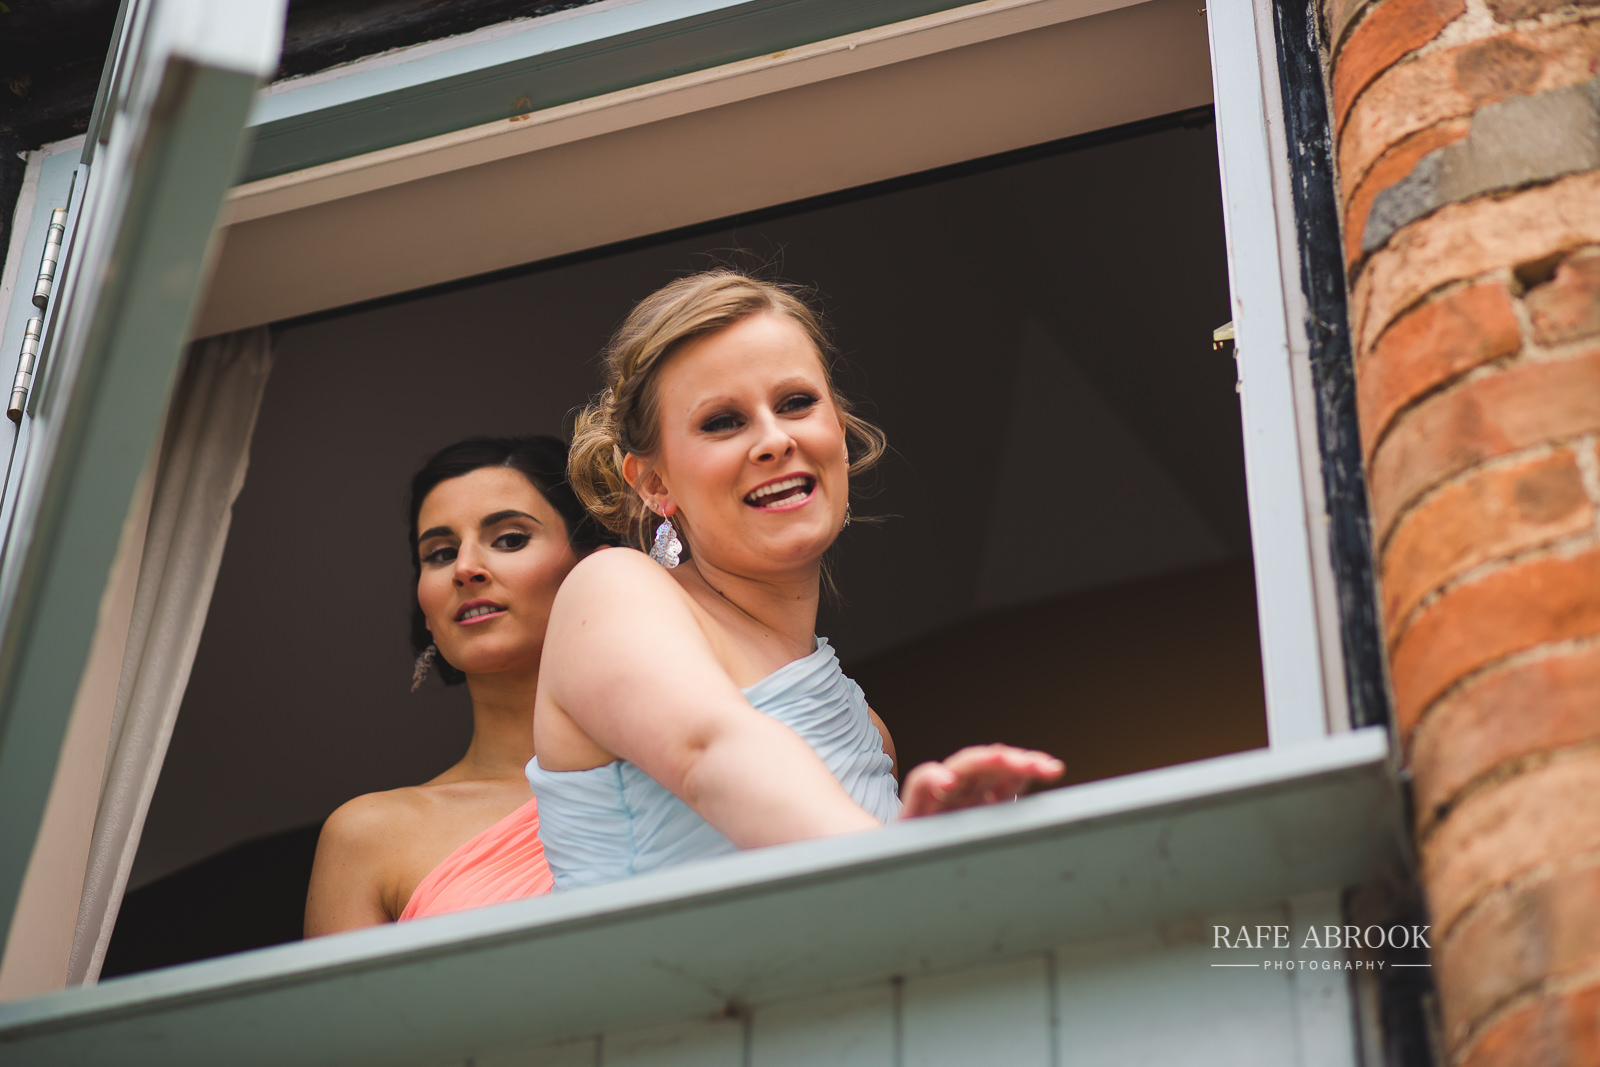 bassmead manor barns wedding st neots cambridgeshire hertfordshire wedding photographer rafe abrook-1205.jpg